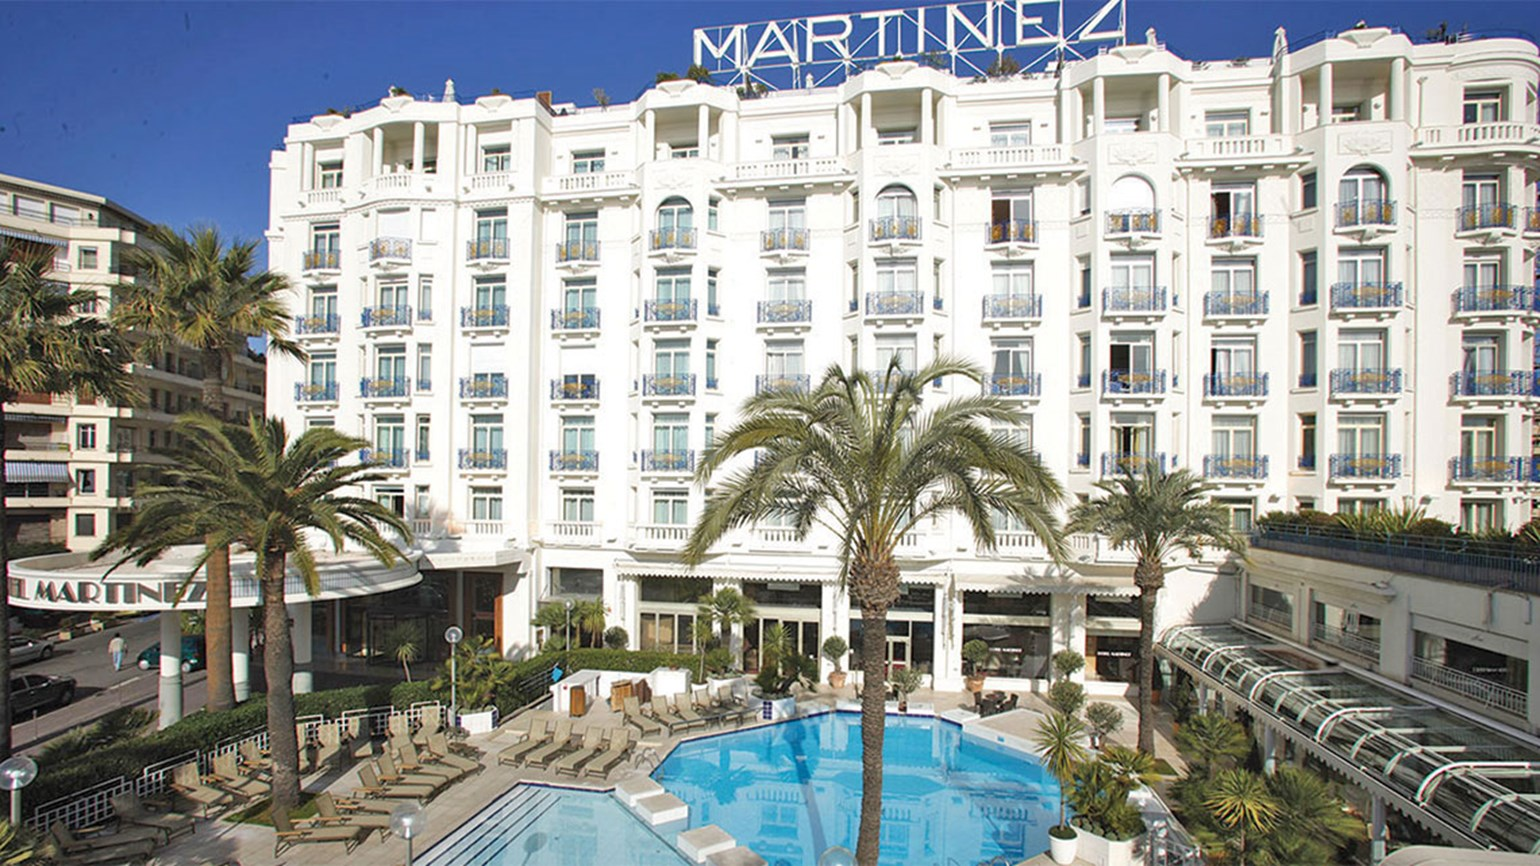 Hotel Martinez joining Hyatt's Unbound Collection